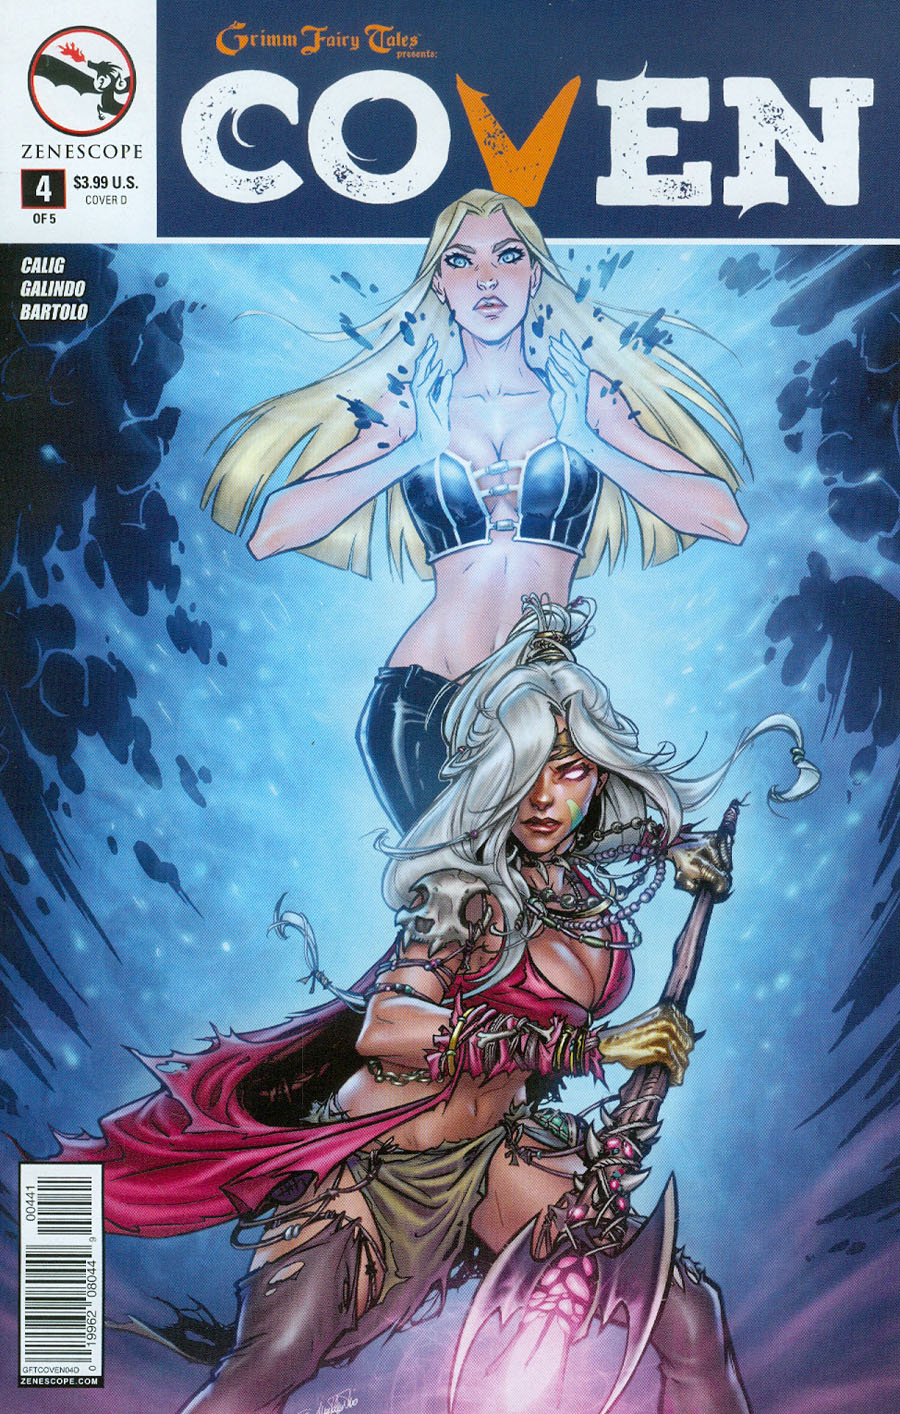 Grimm Fairy Tales Presents Coven #4 Cover D Tina Valentino